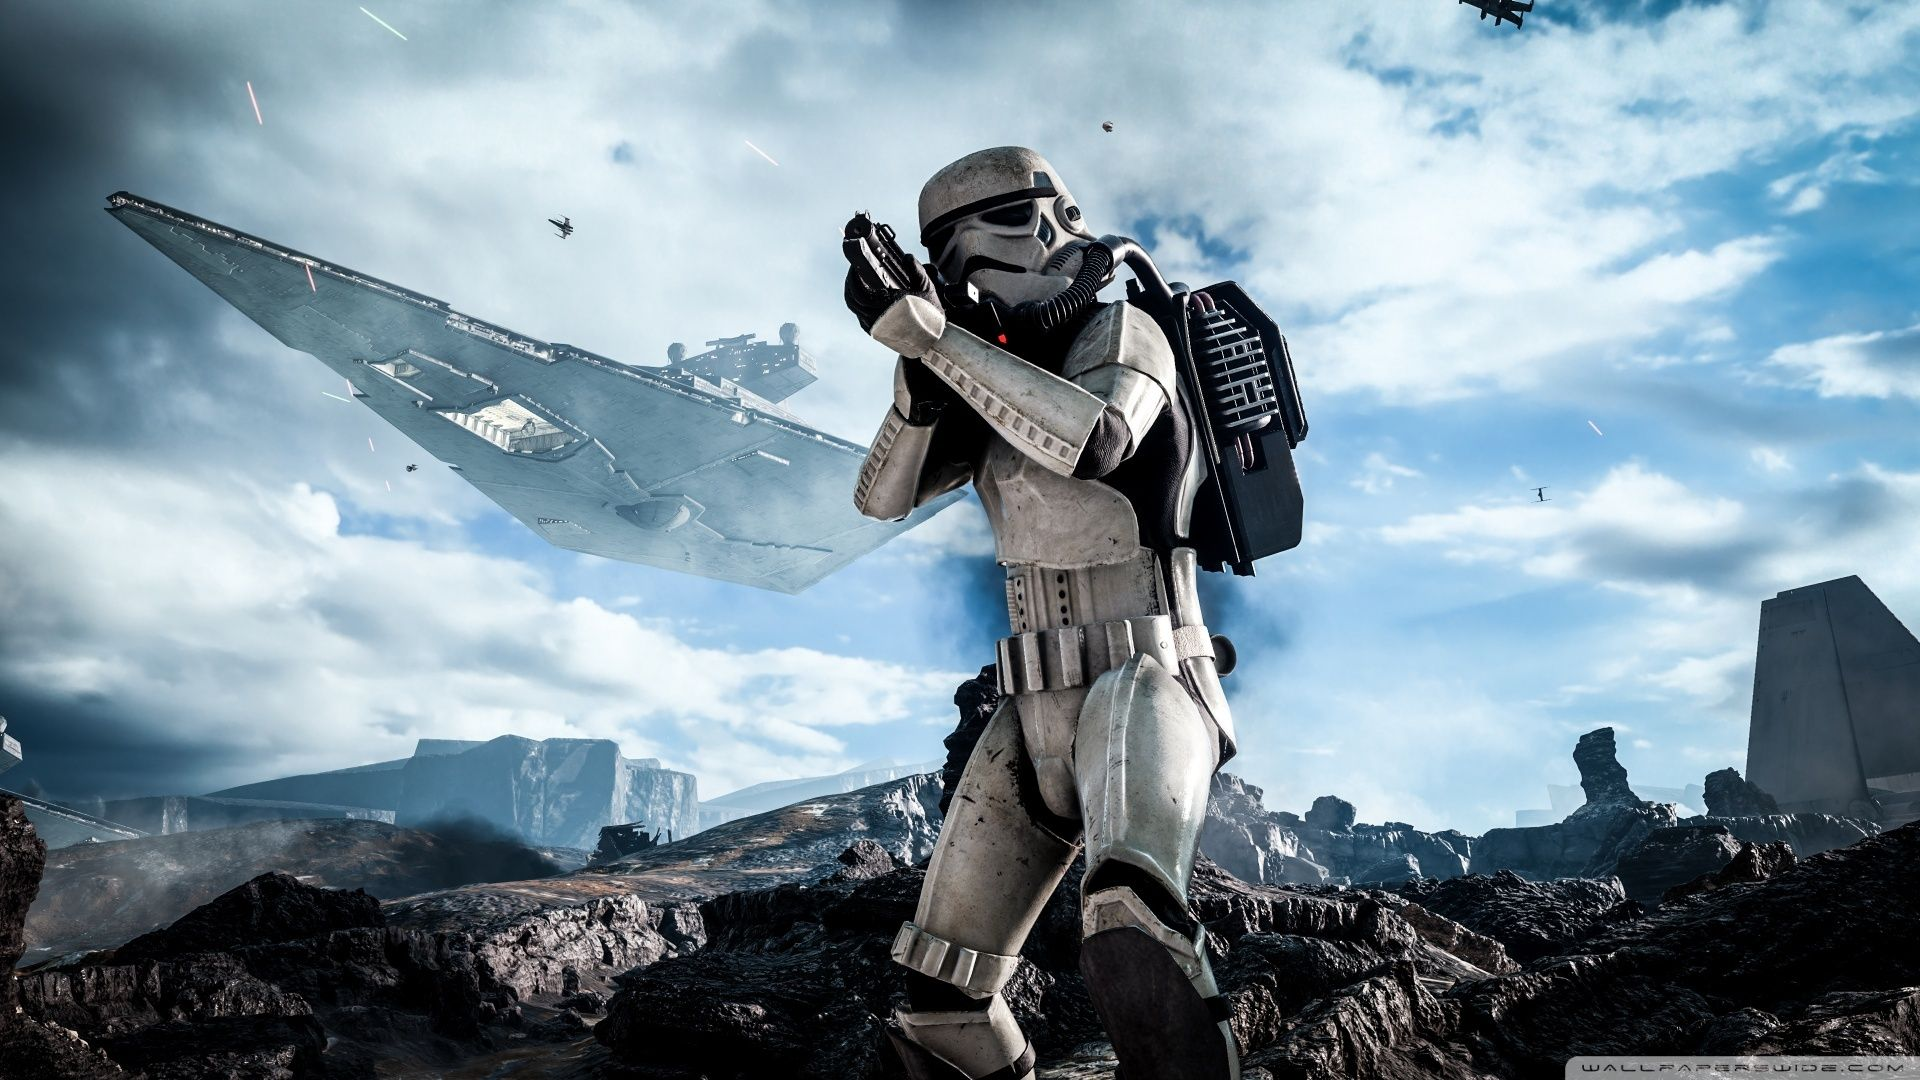 Insanity Hd Wallpaper Star Wars Background Star Wars Wallpaper Star Wars Battlefront